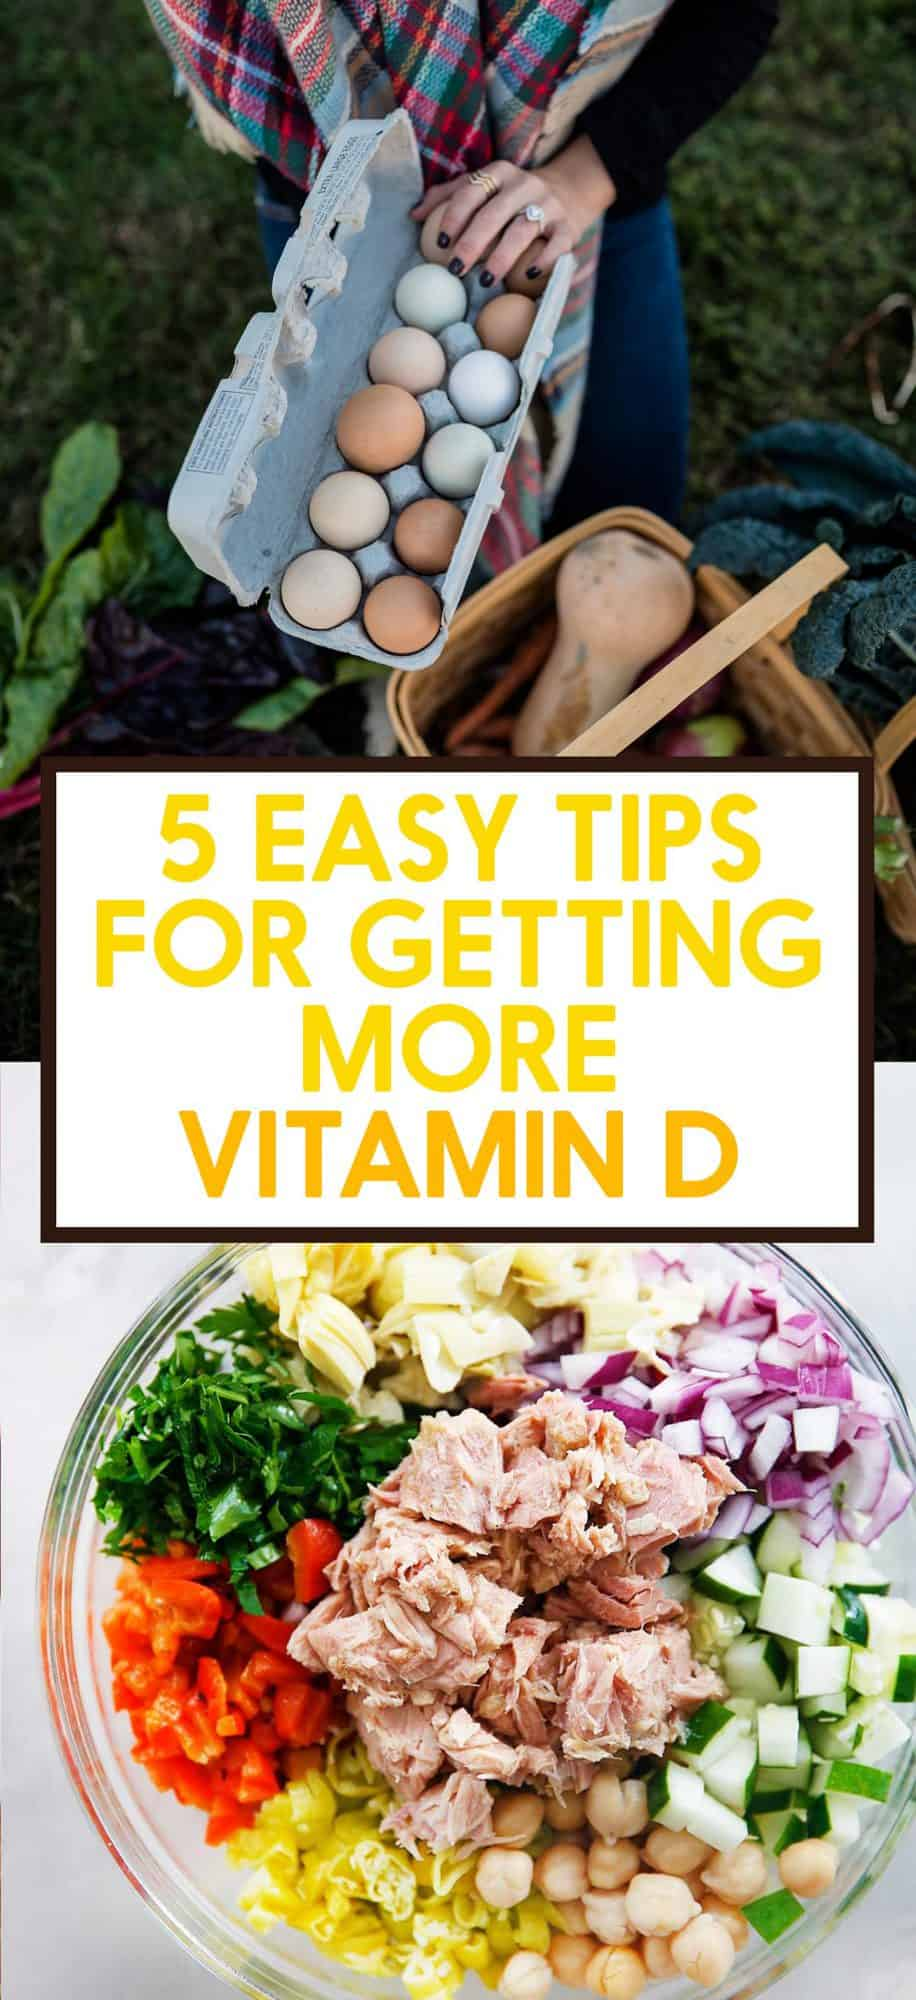 5 Easy Tips for Getting More Vitamin D